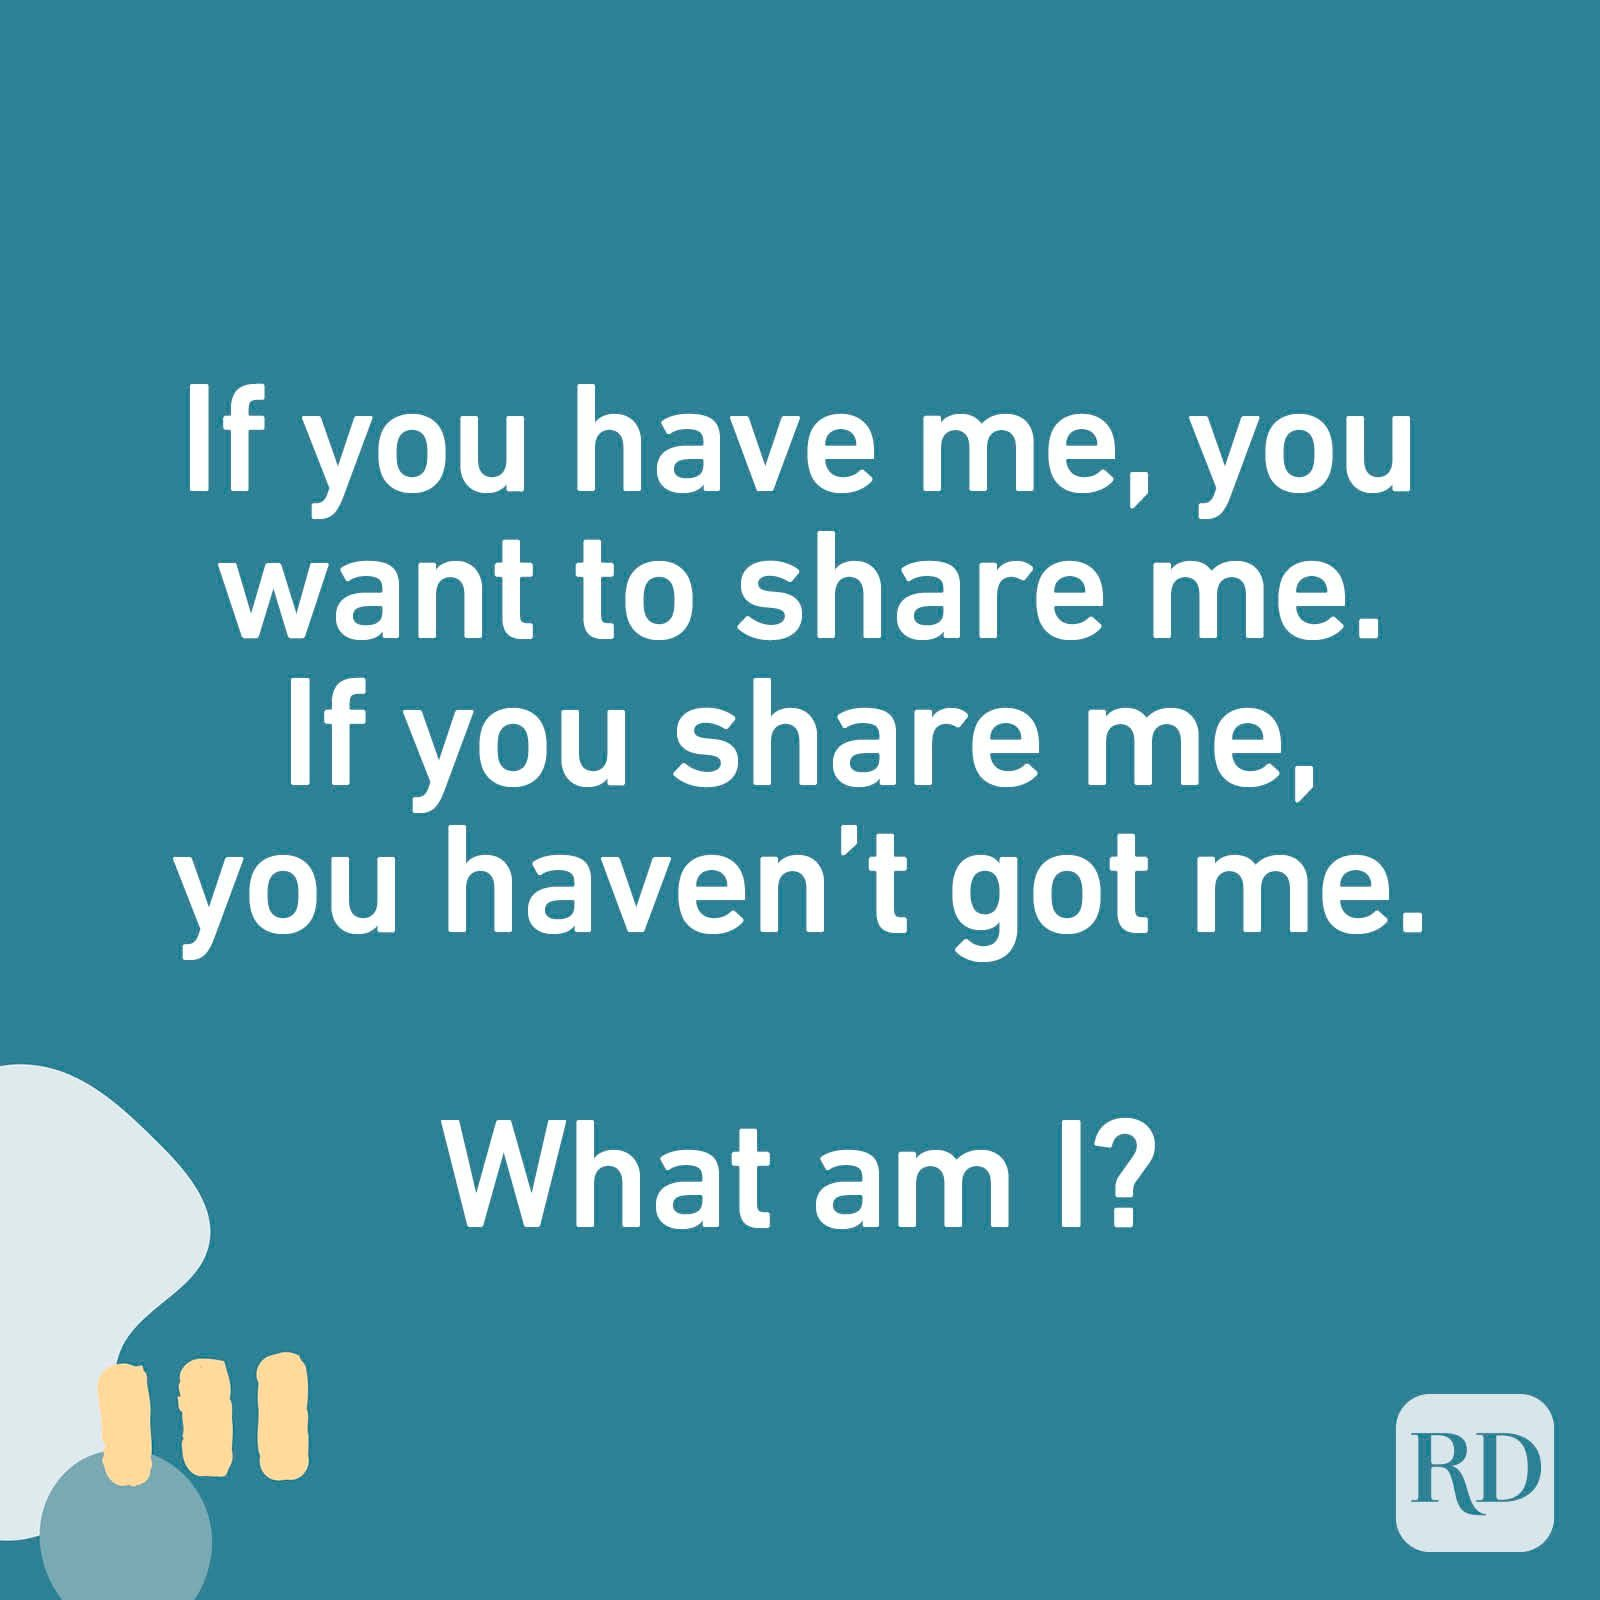 If you have me, you want to share me. If you share me, you haven't got me. What am I?